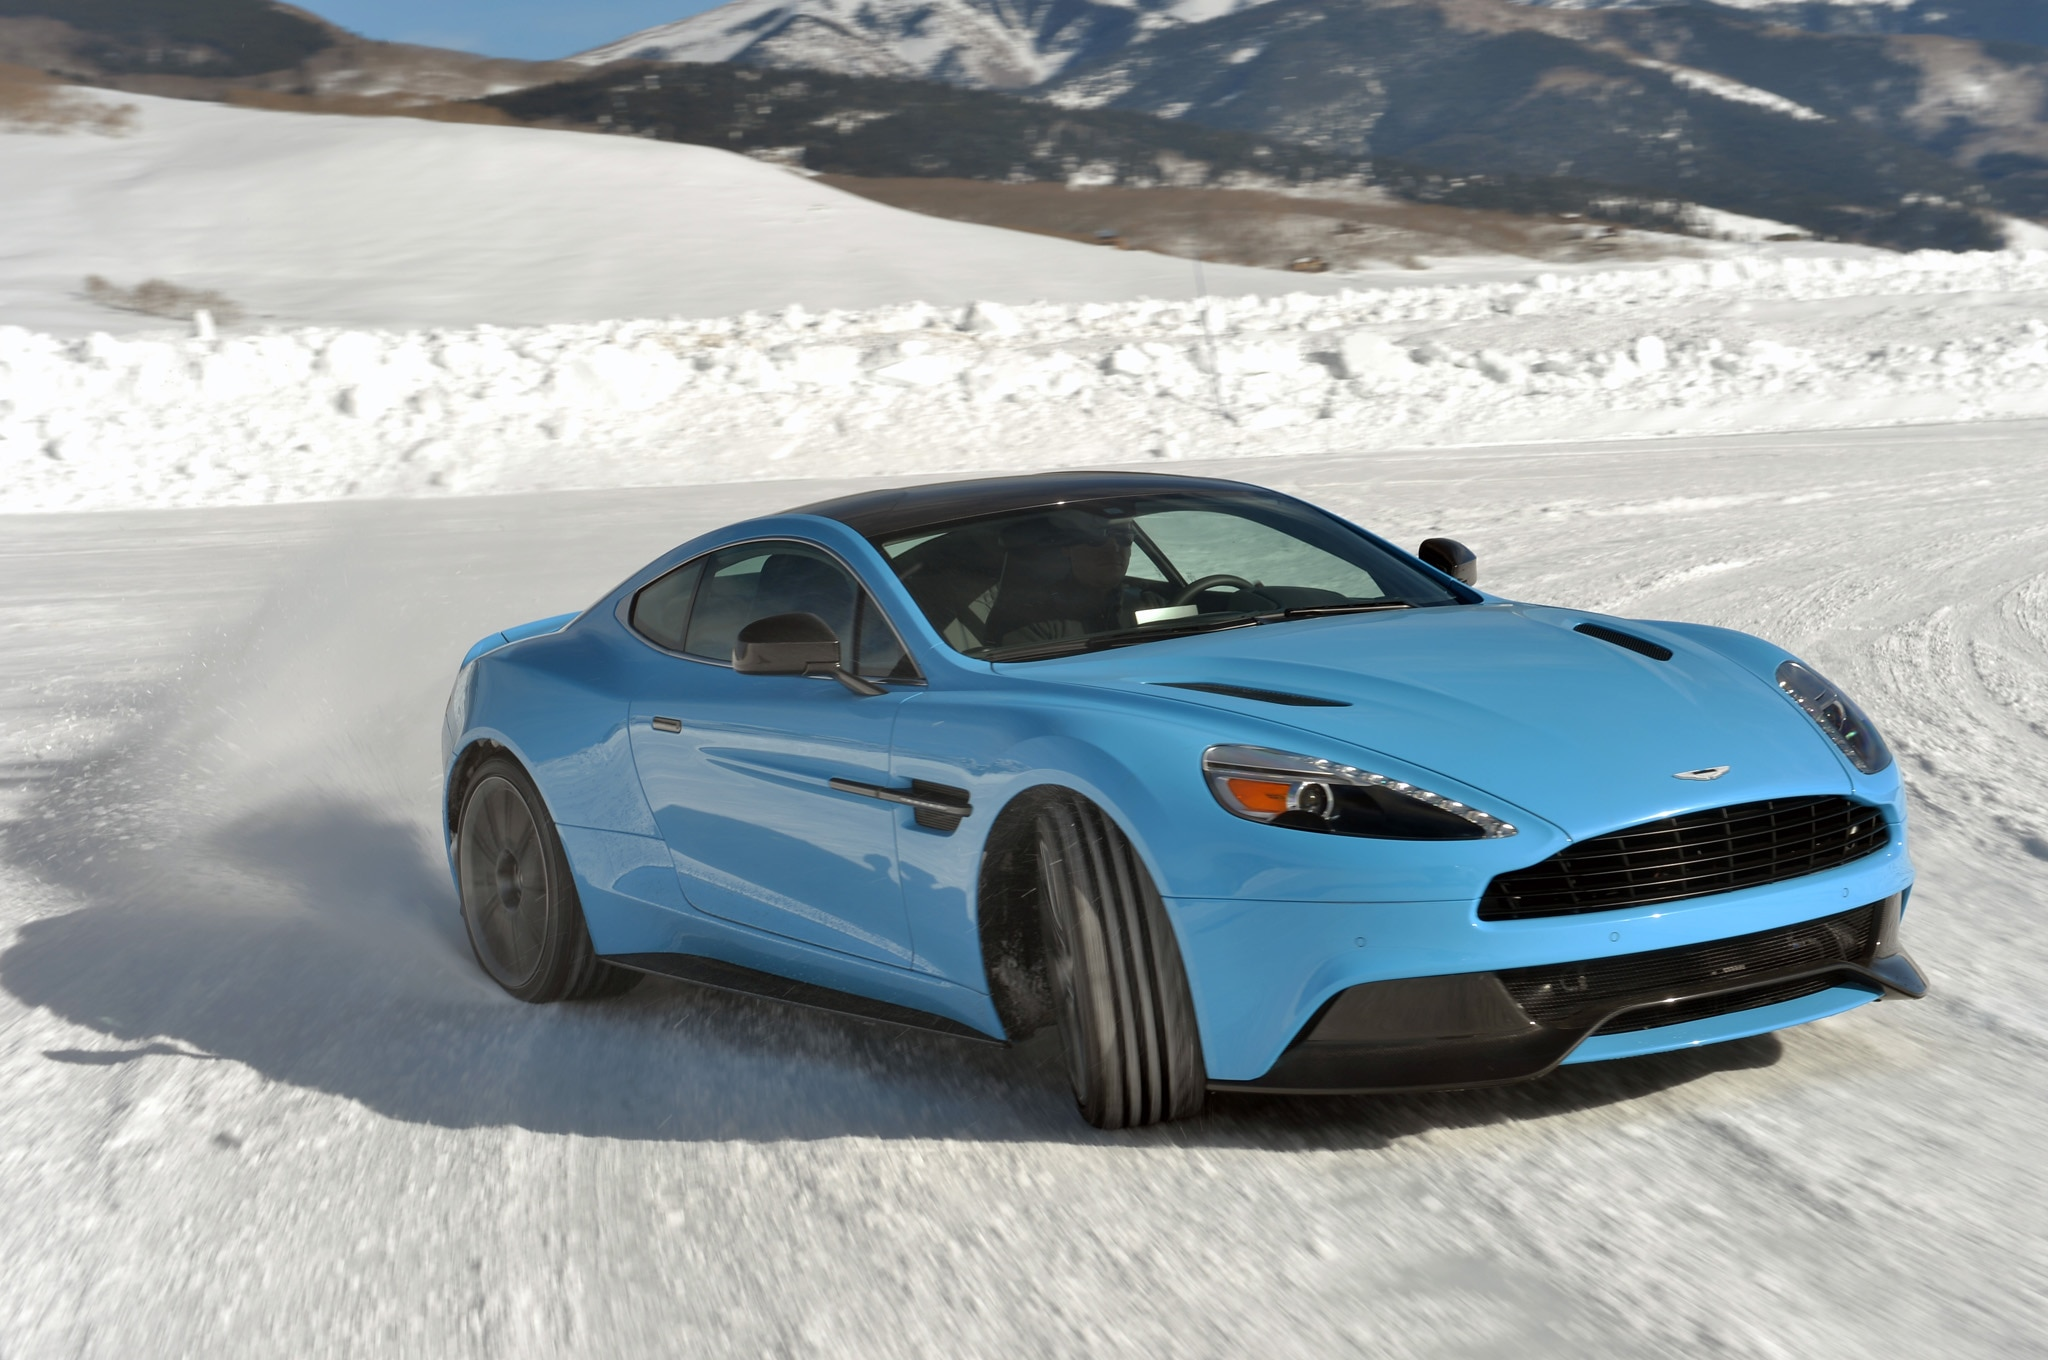 report: next-gen aston martin vanquish could have over 700 hp